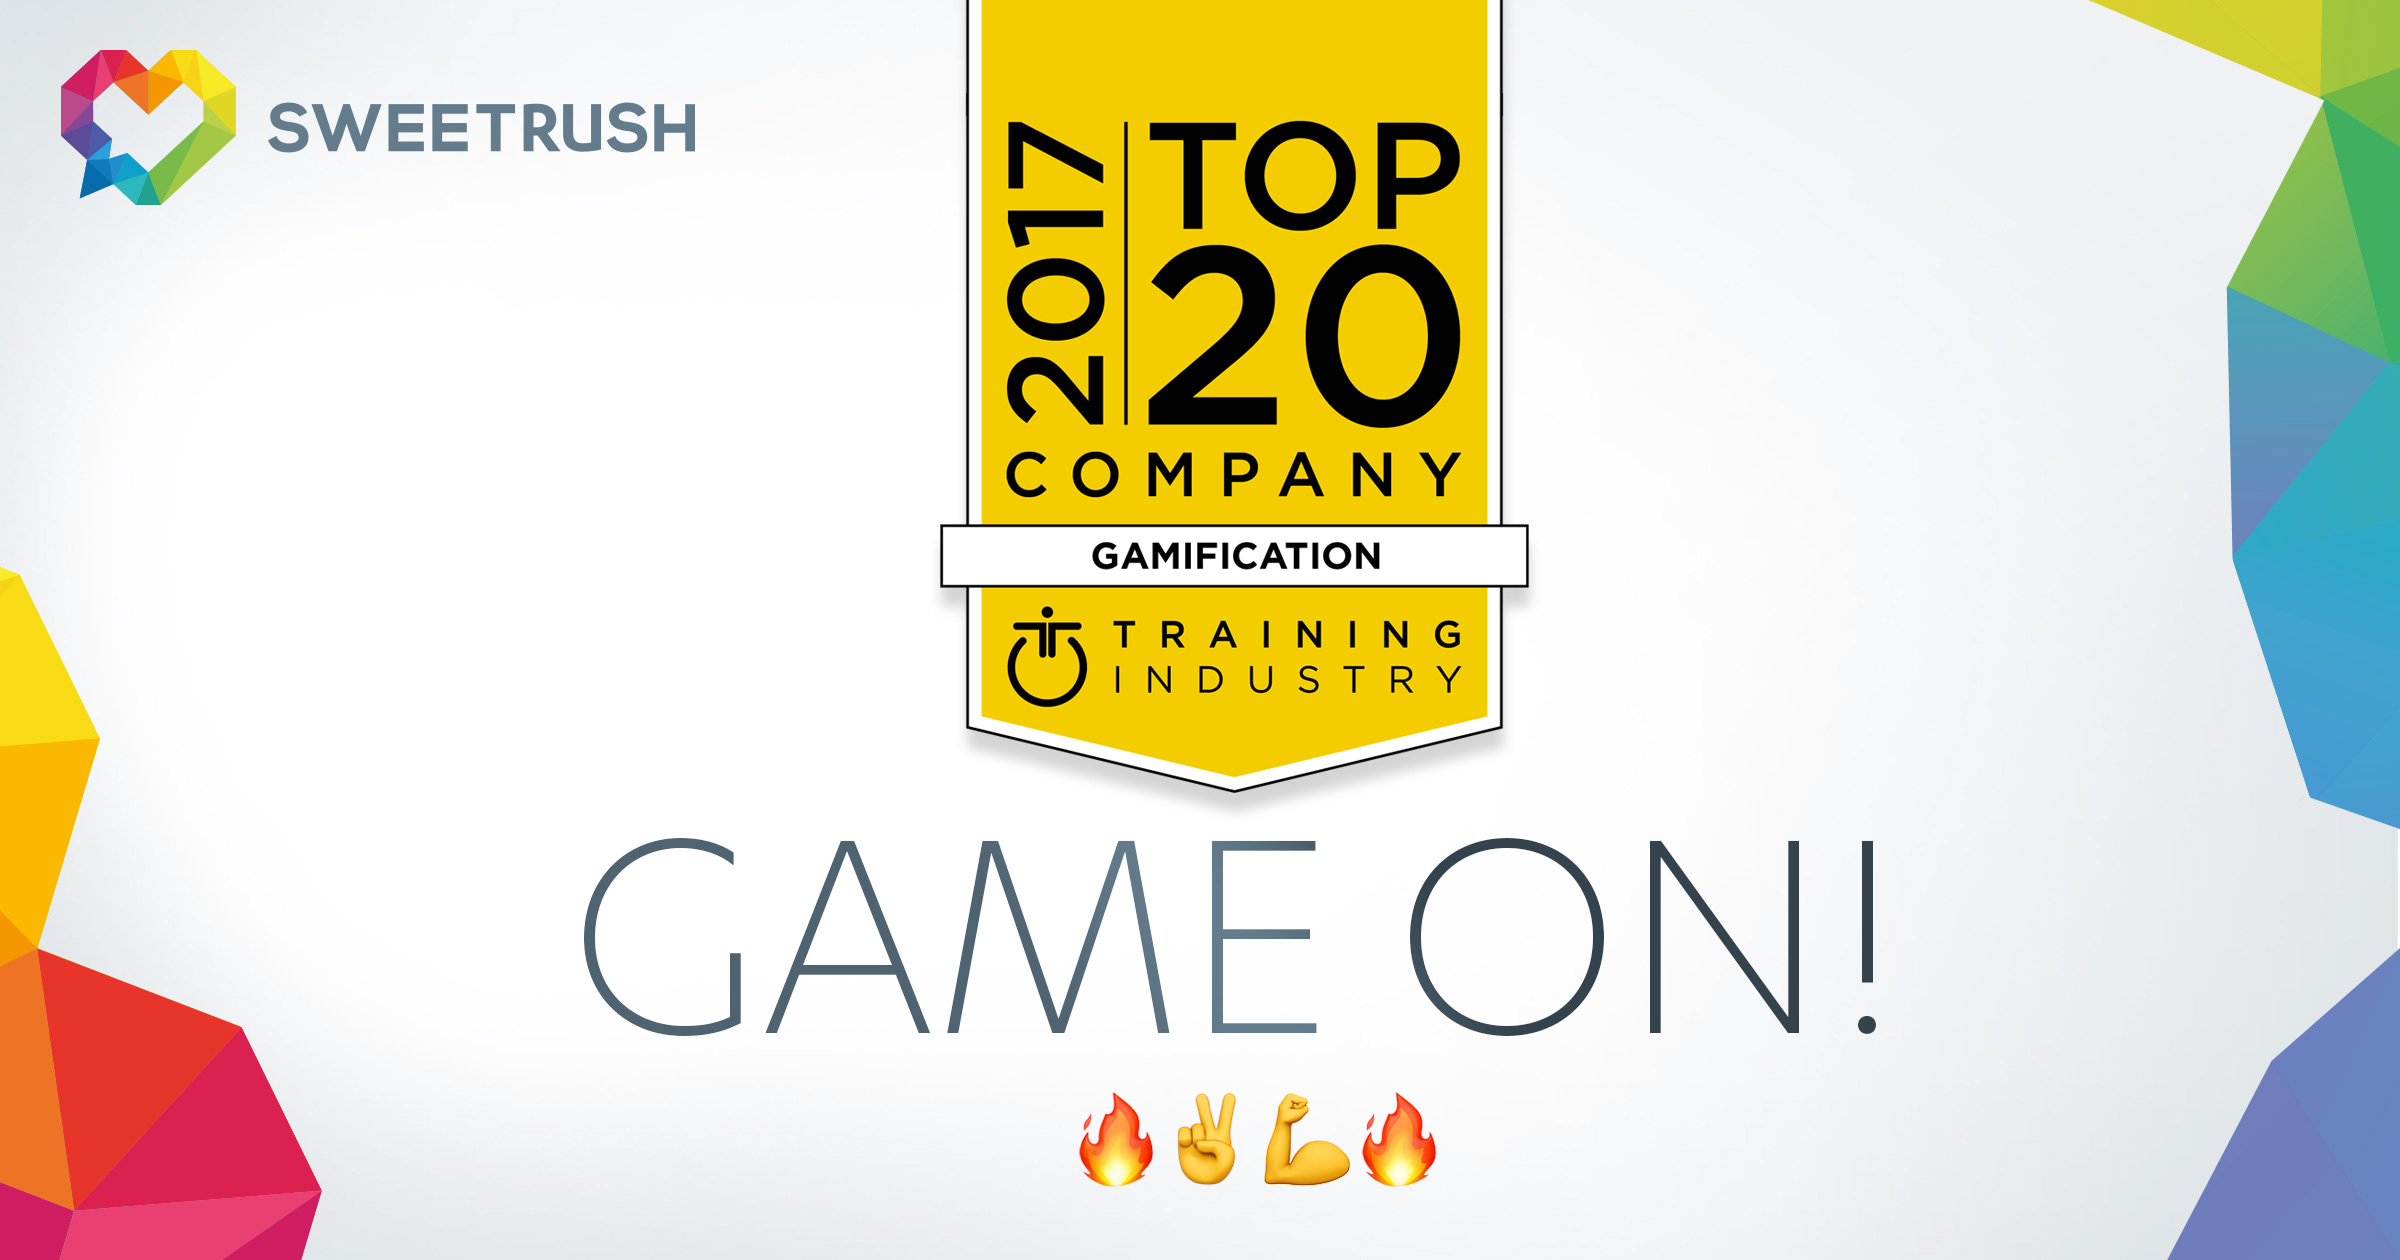 Top20_Gamification_sweetrush